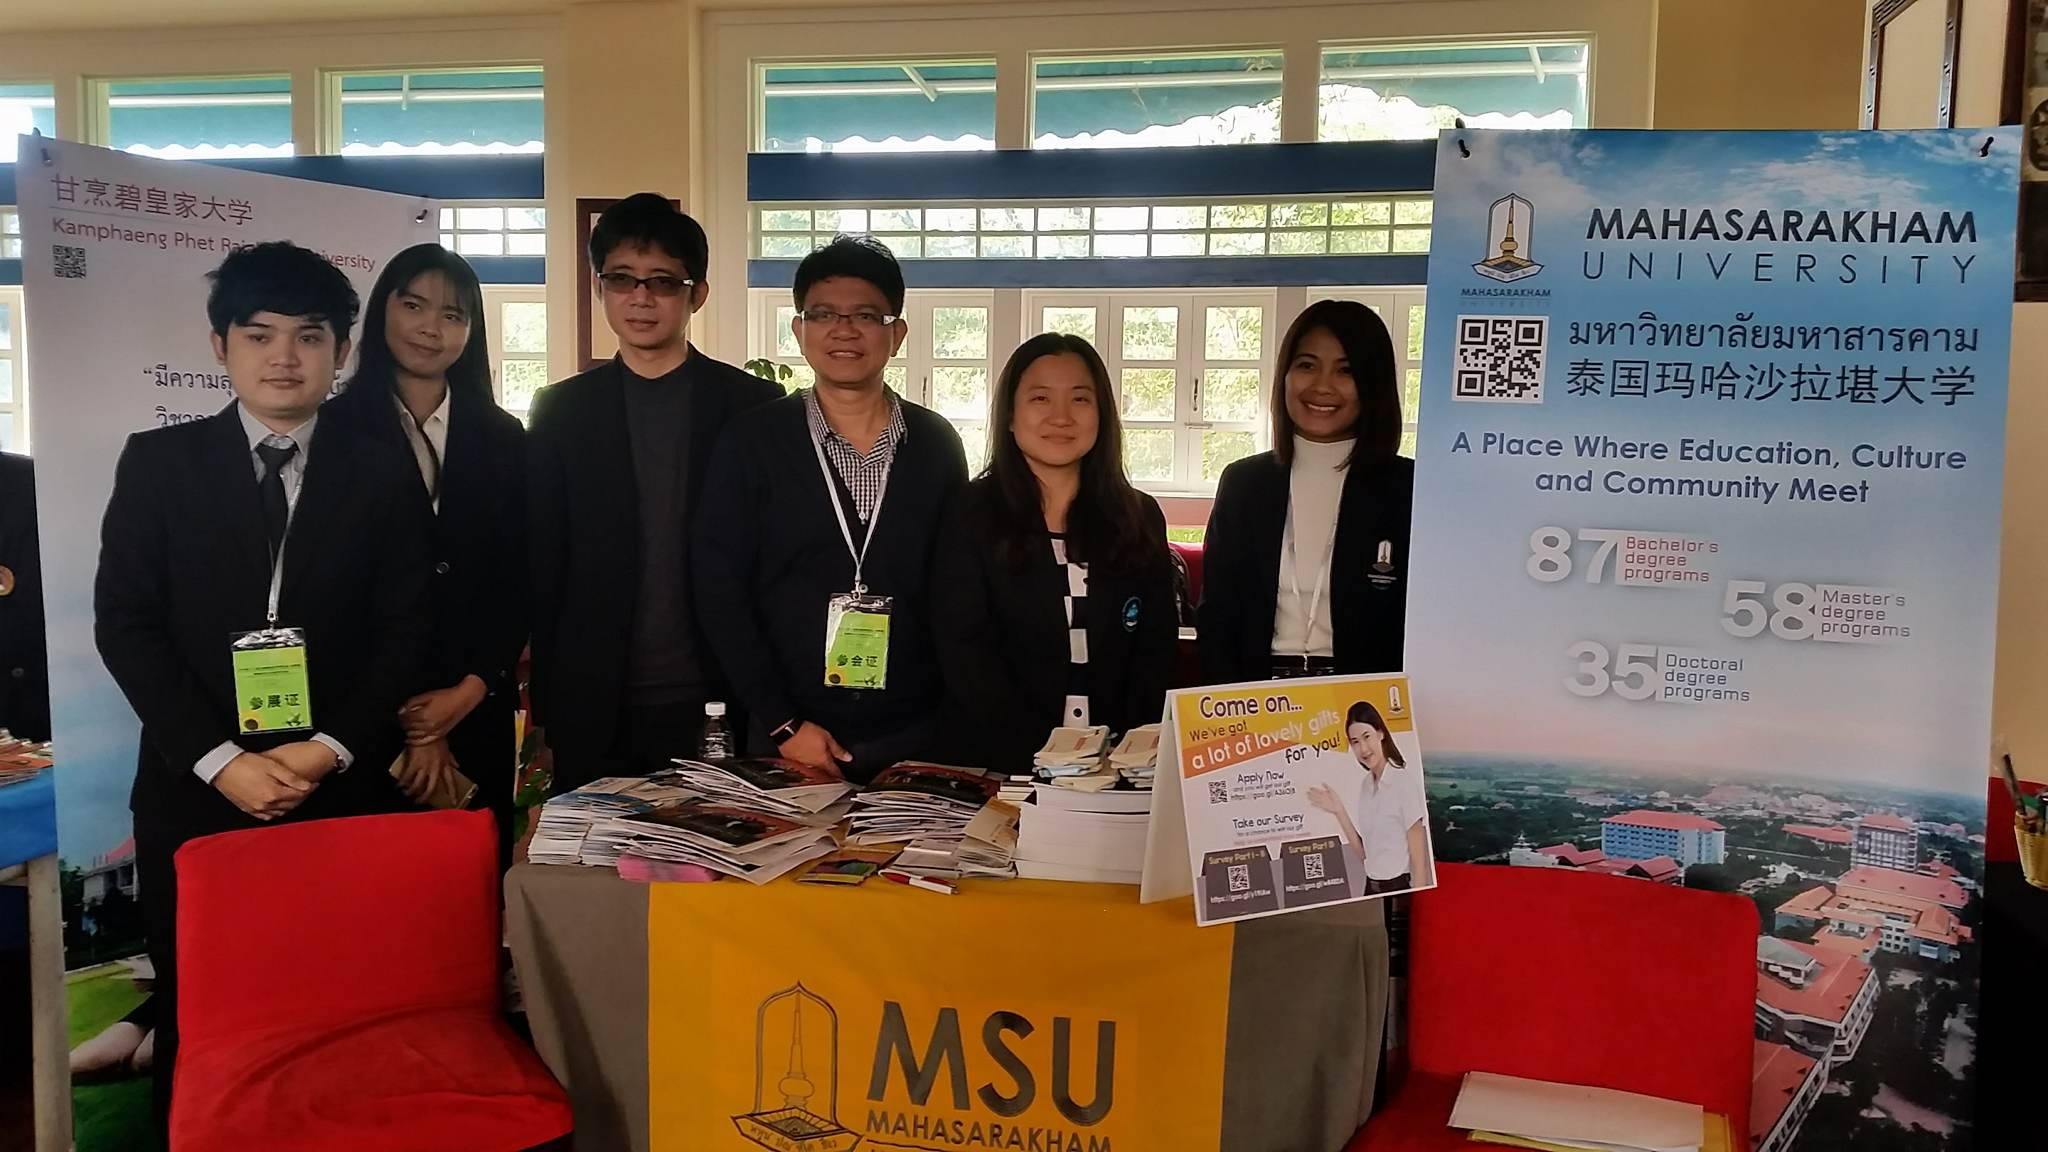 Mahasarakham University at Yunnan International Educational Exhibition (Autumn Fair)